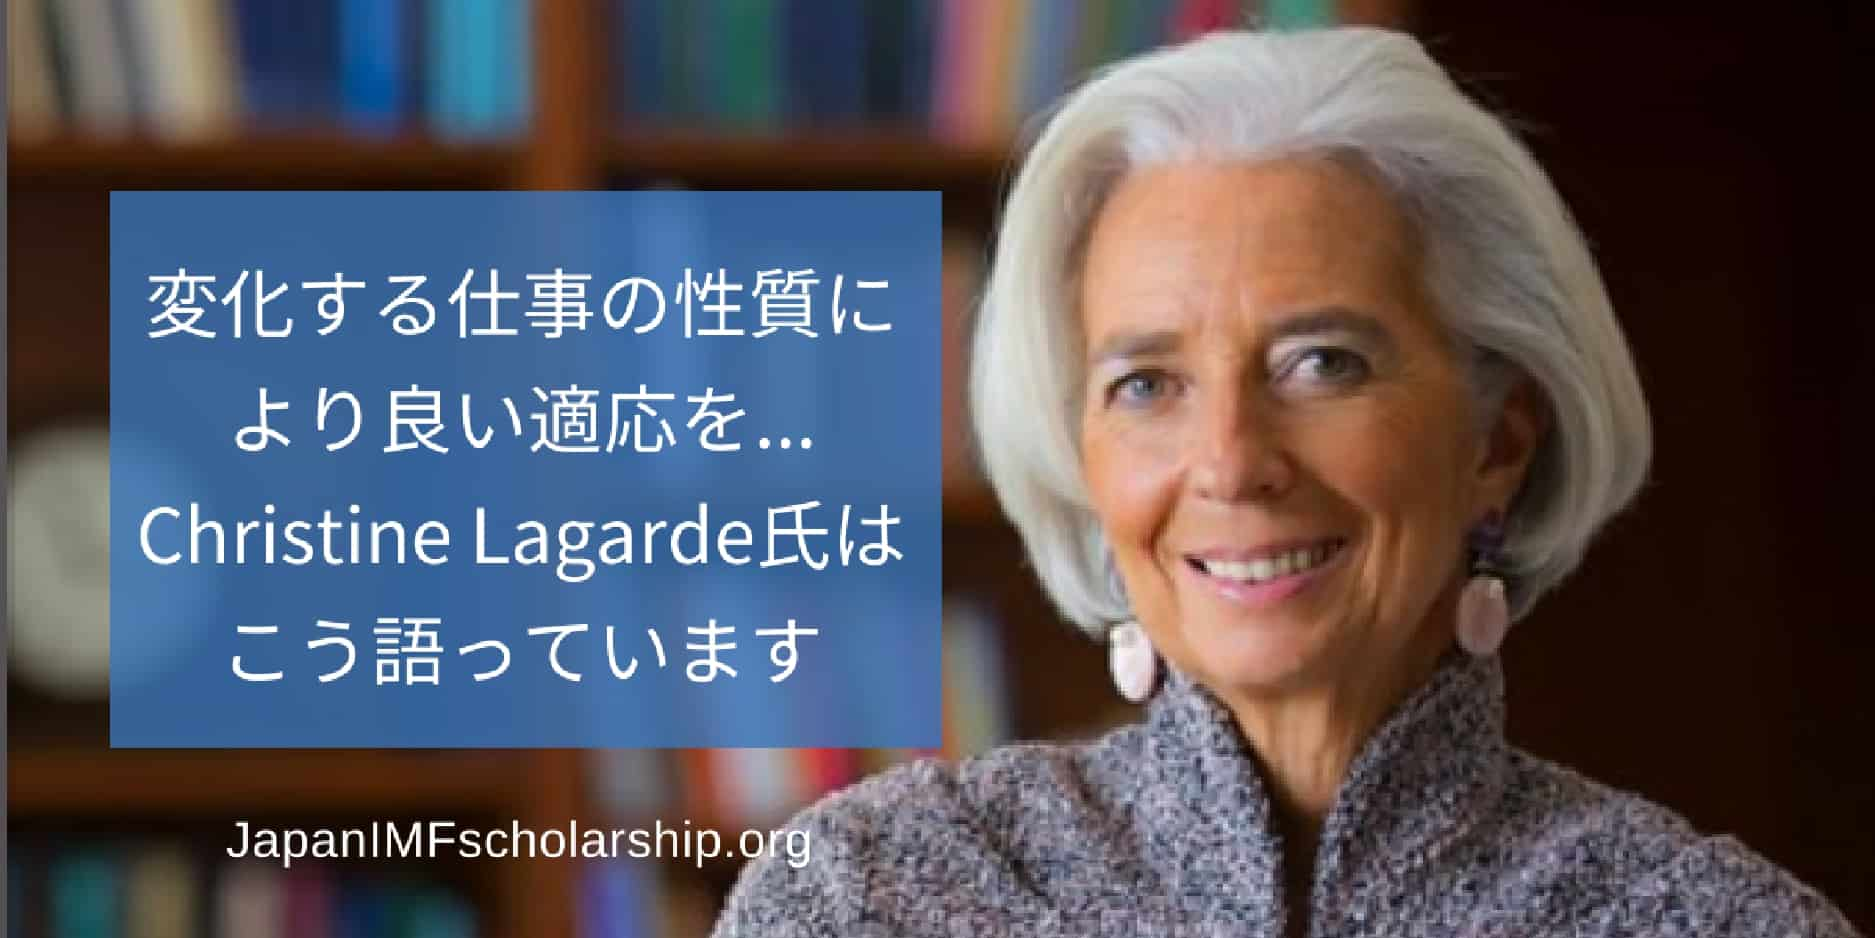 jisp web-fb-insta IMF managing director on IMF podcast 変化する仕事の性質により良い適応を | visit japanimfscholarship.org